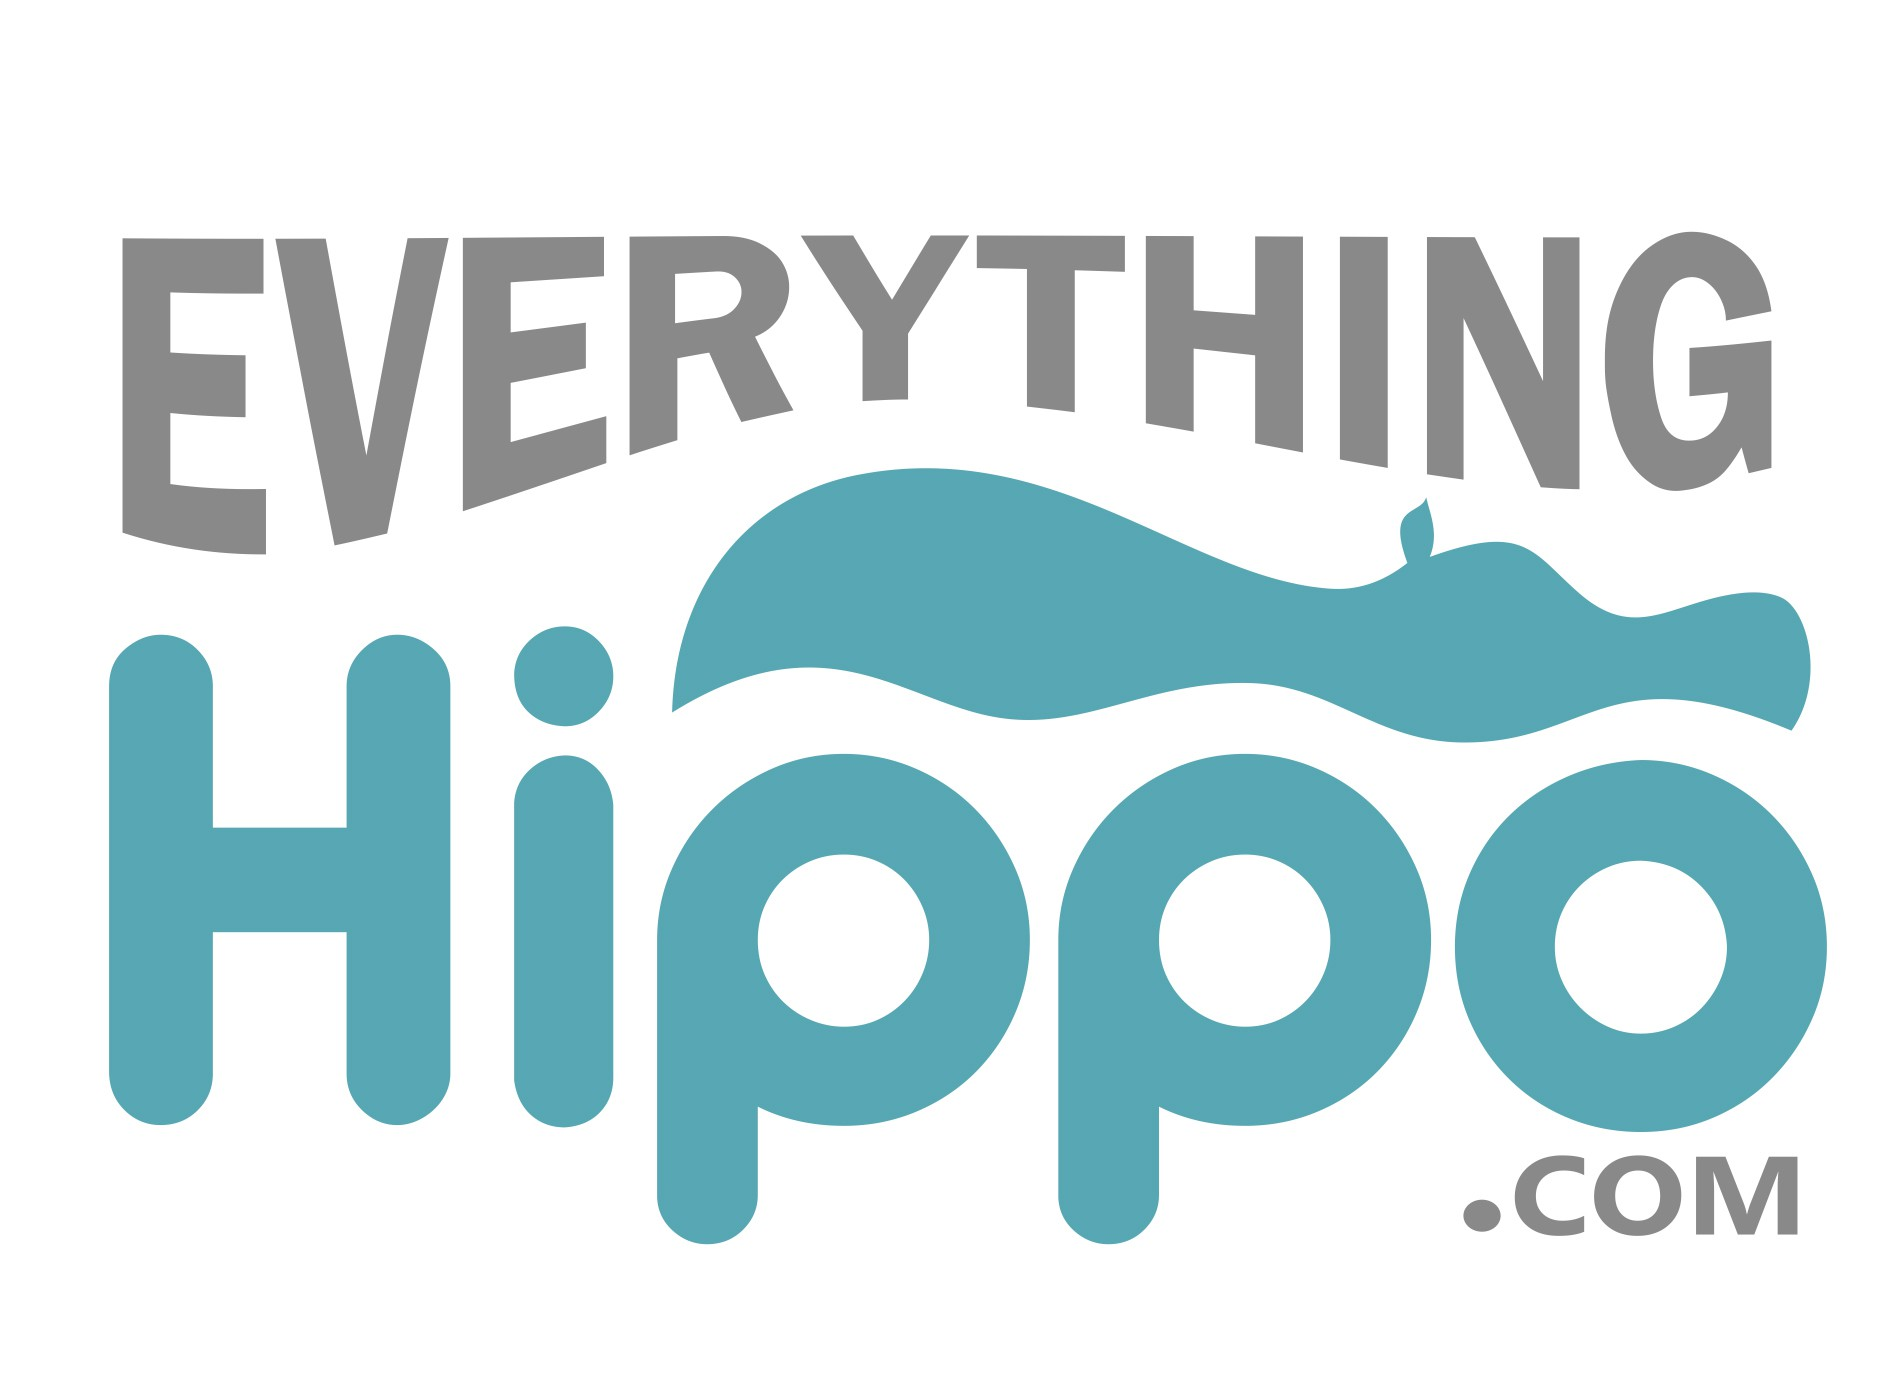 Cool Clever Hippo Store!